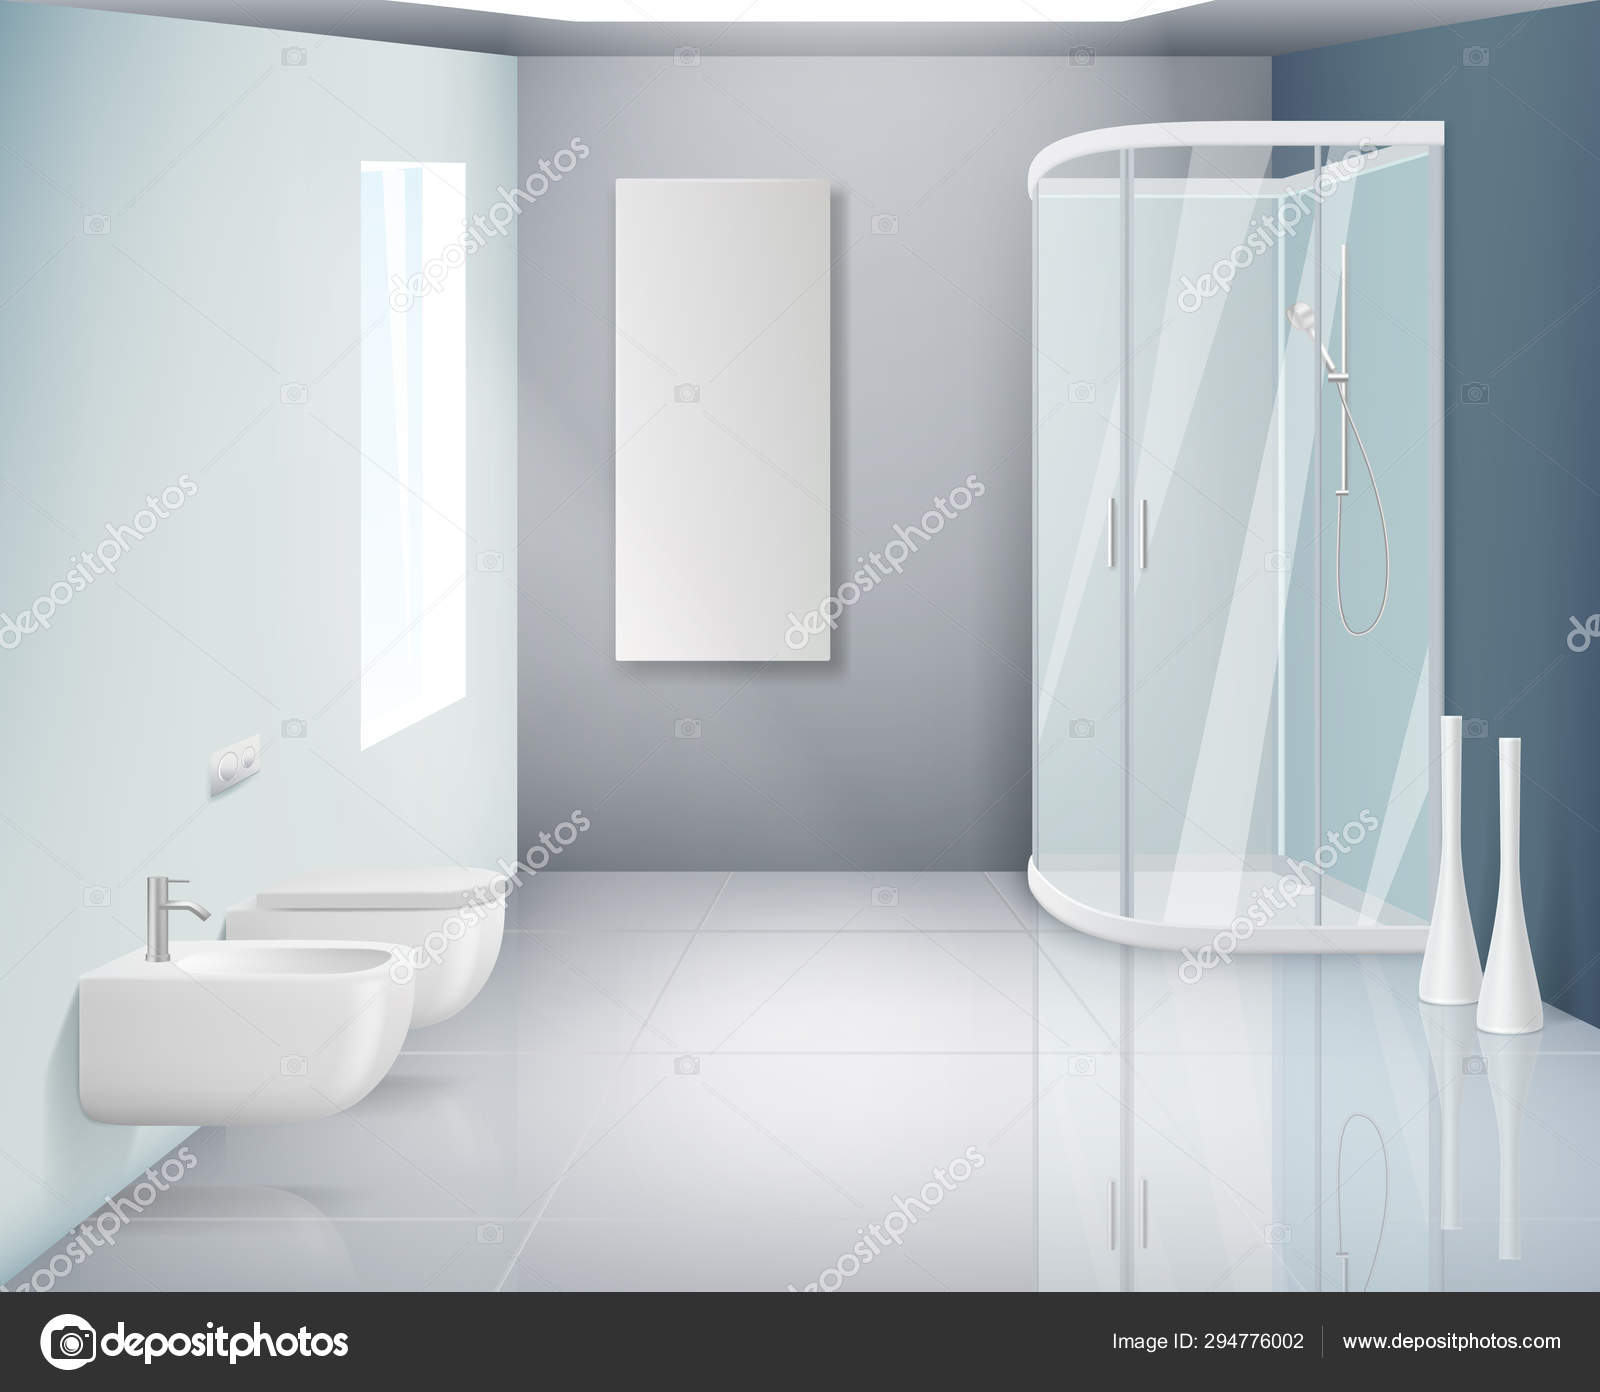 Bathroom Interior Modern Toilet Or Washroom Objects Bathroom Realistic Vector Background Stock Vector C Onyxprj 294776002